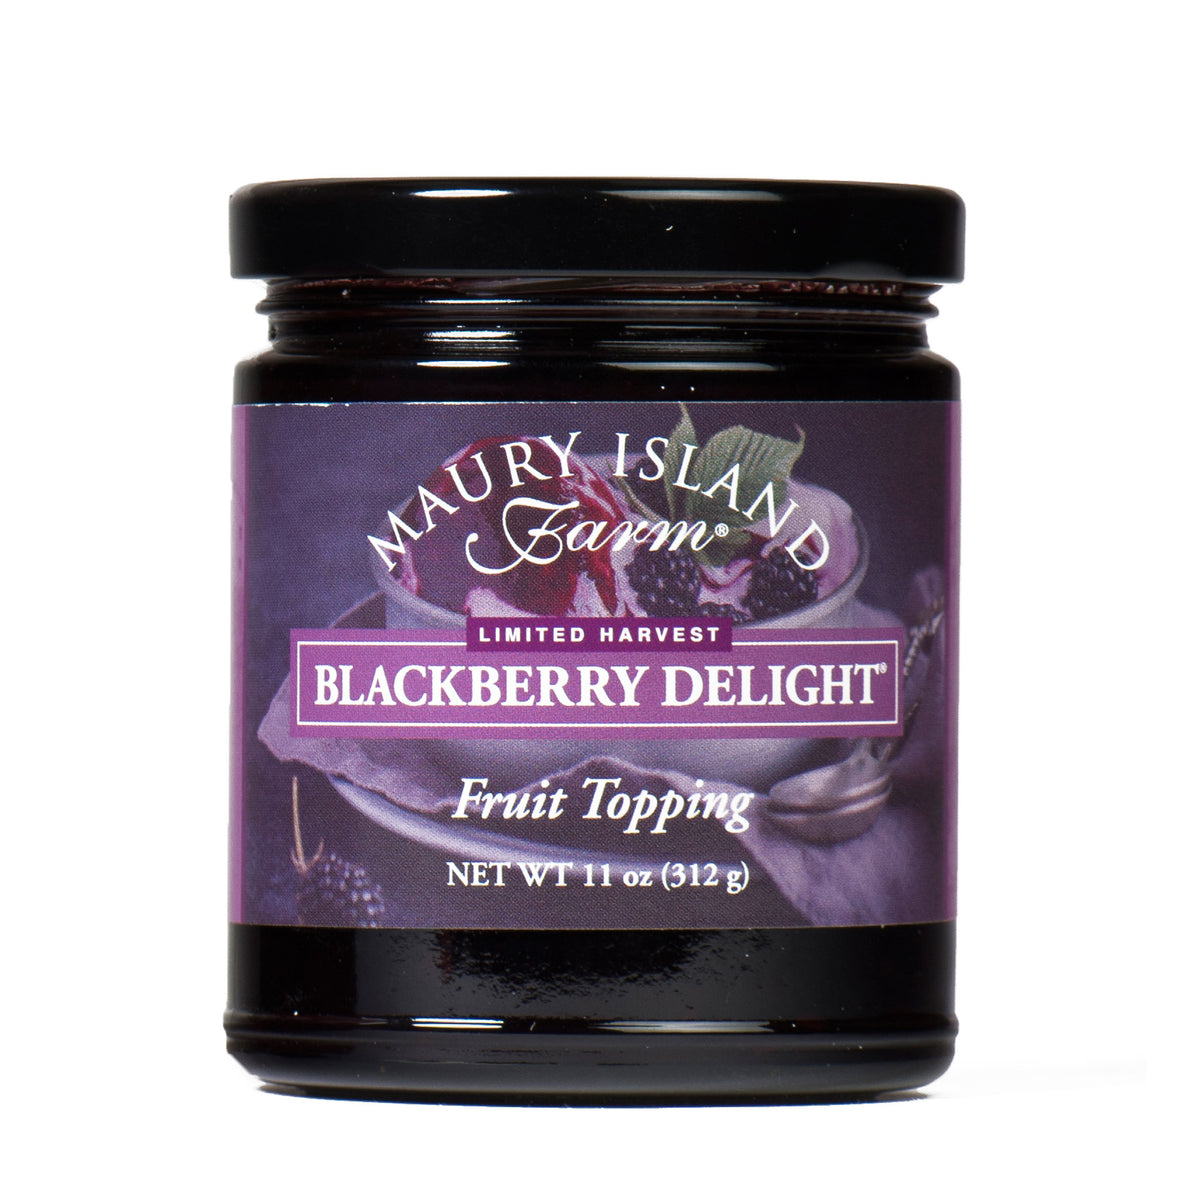 Limited Harvest Blackberry Delight Fruit Topping 11 Ounce Jar from Maury Island Farm